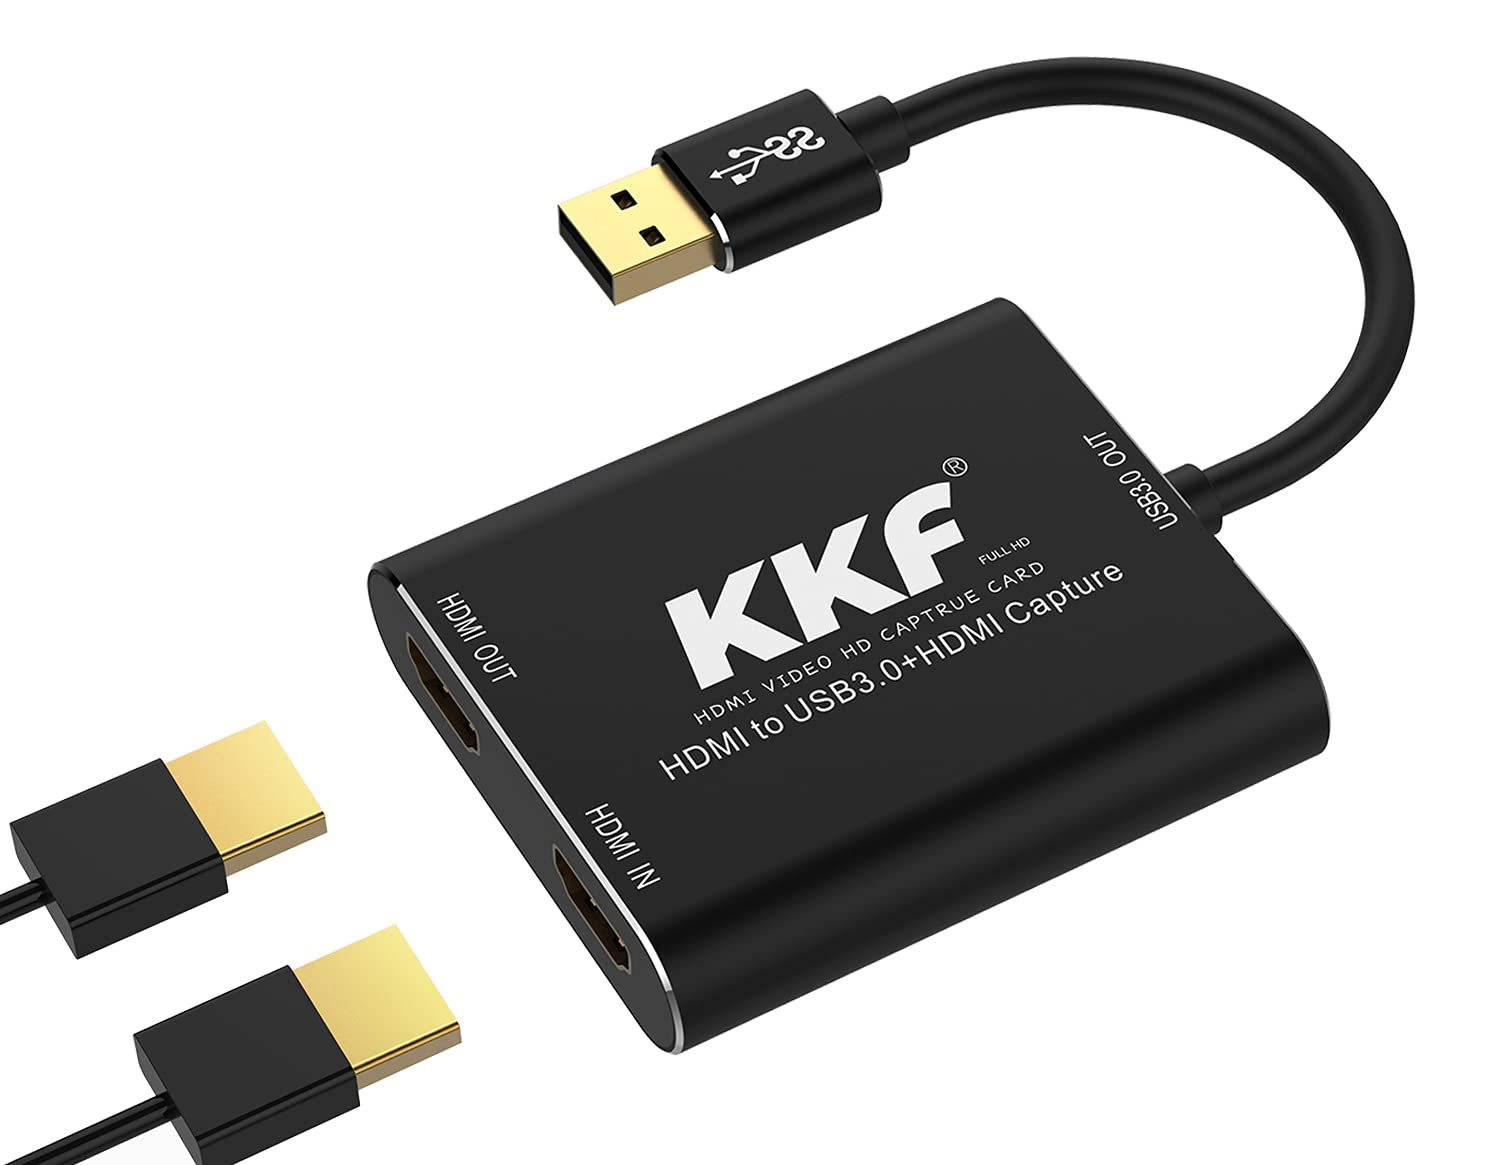 Sponsored Ad - KKF HDMI Video Capture Card 4K, USB3.0 1080P 60FPS HD Ultra-Low Latency, Game Capture Device Work with PS5 ...